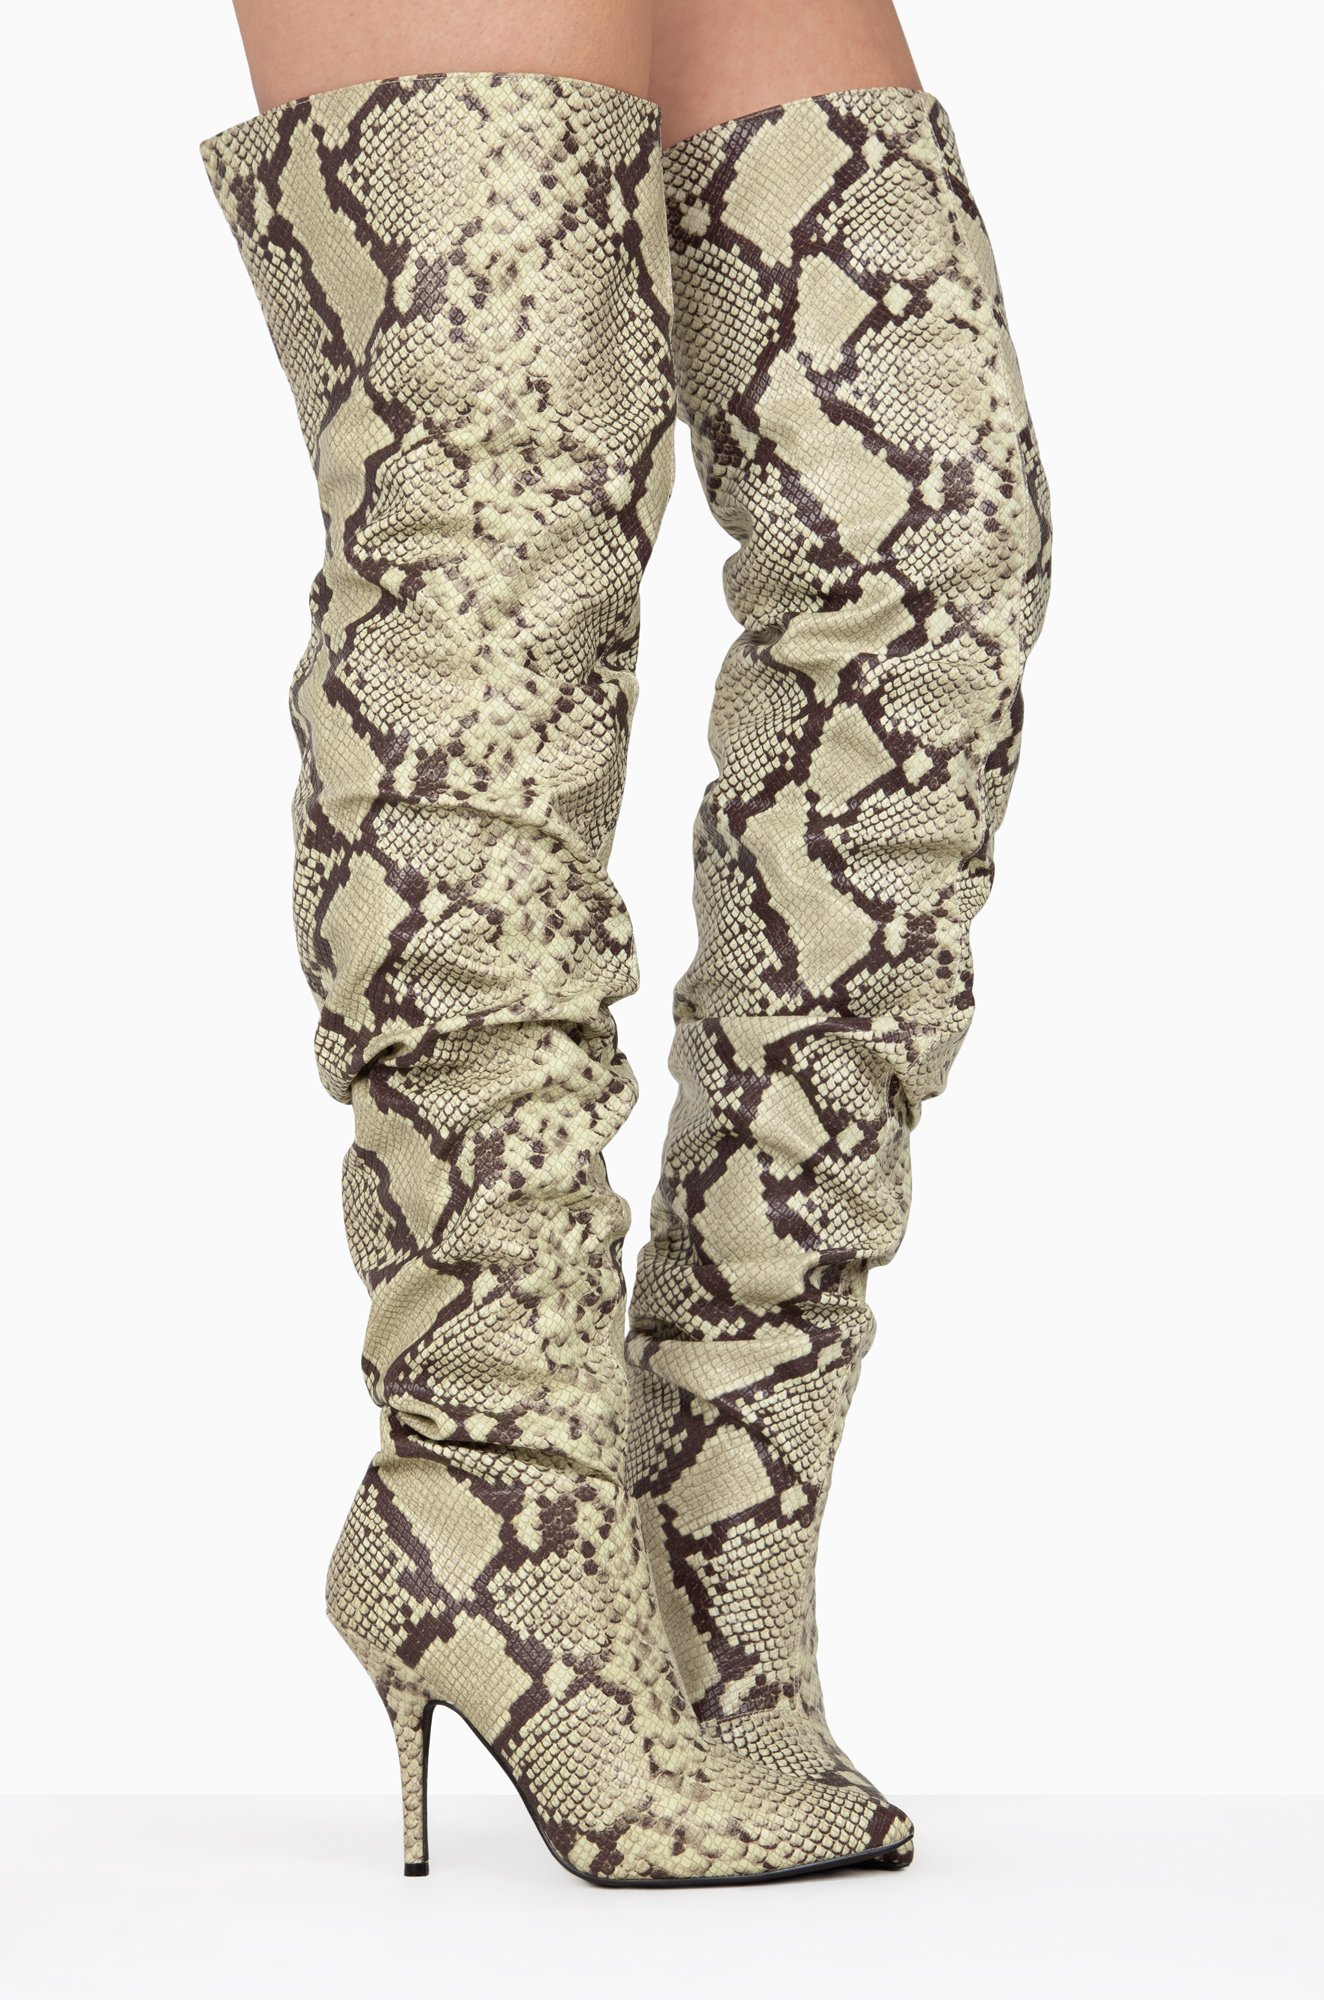 Cape-Robbin-Bown-Snake-Thigh-High-Slouch-Pointed-Toe-Over-The-Knee-Stiletto-Boot thumbnail 19